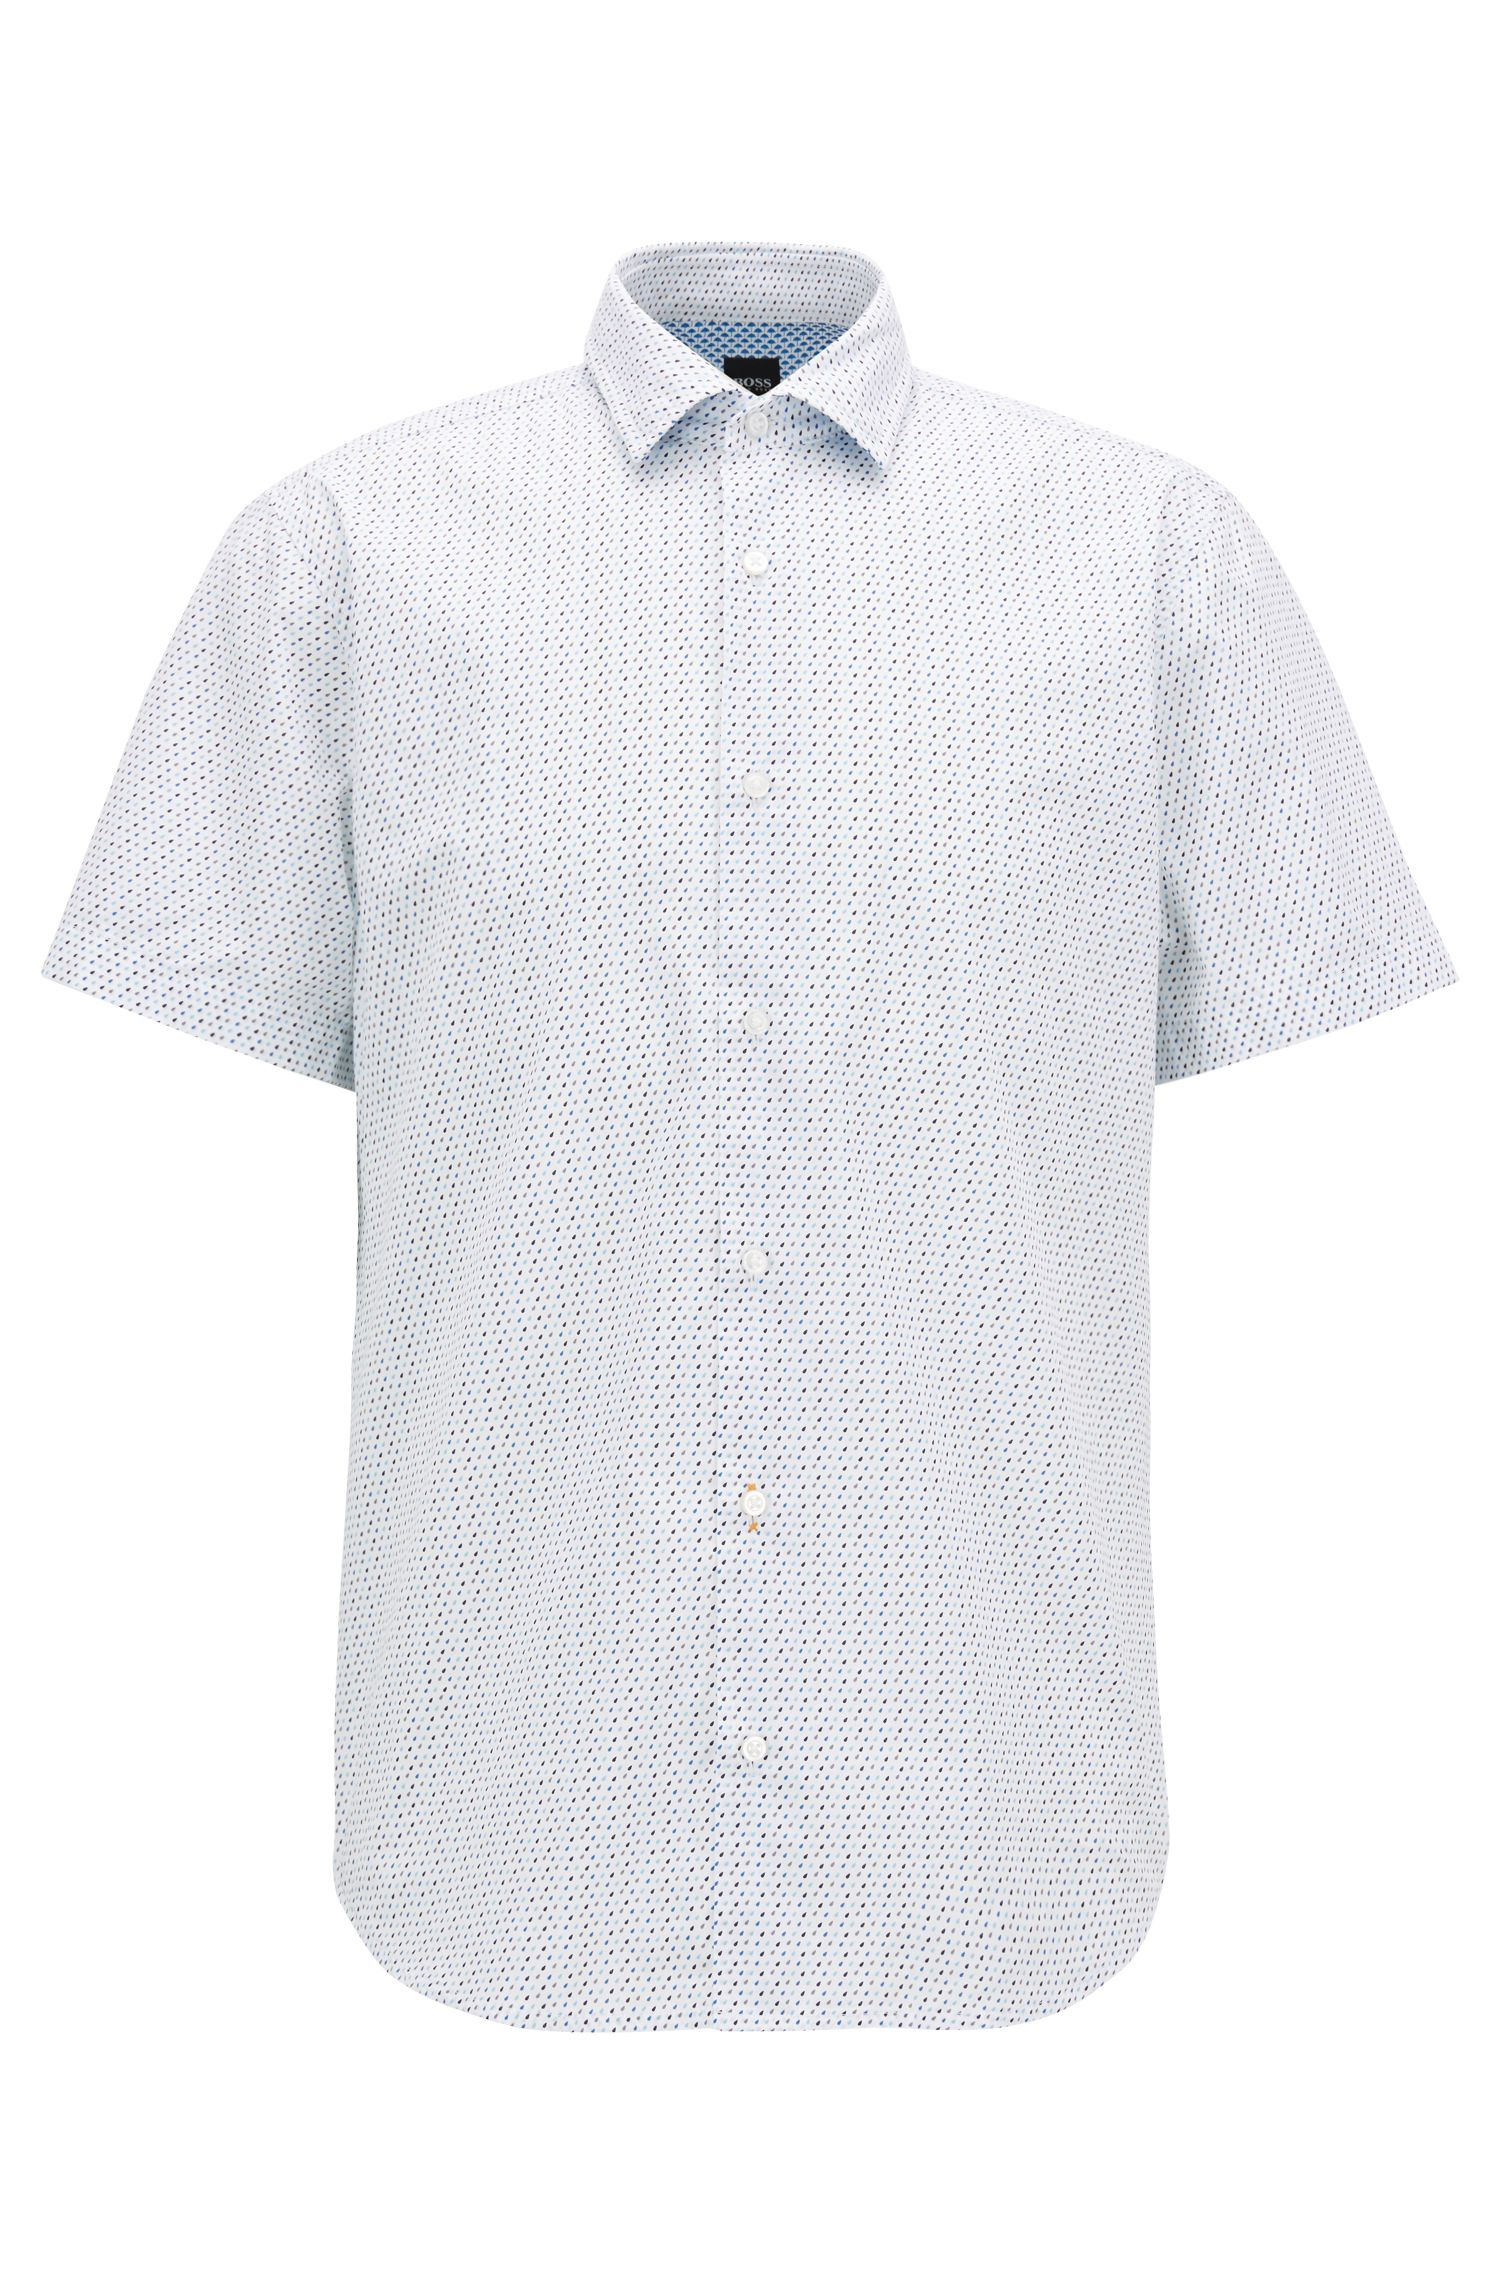 Regular-fit cotton shirt with micro geometric print